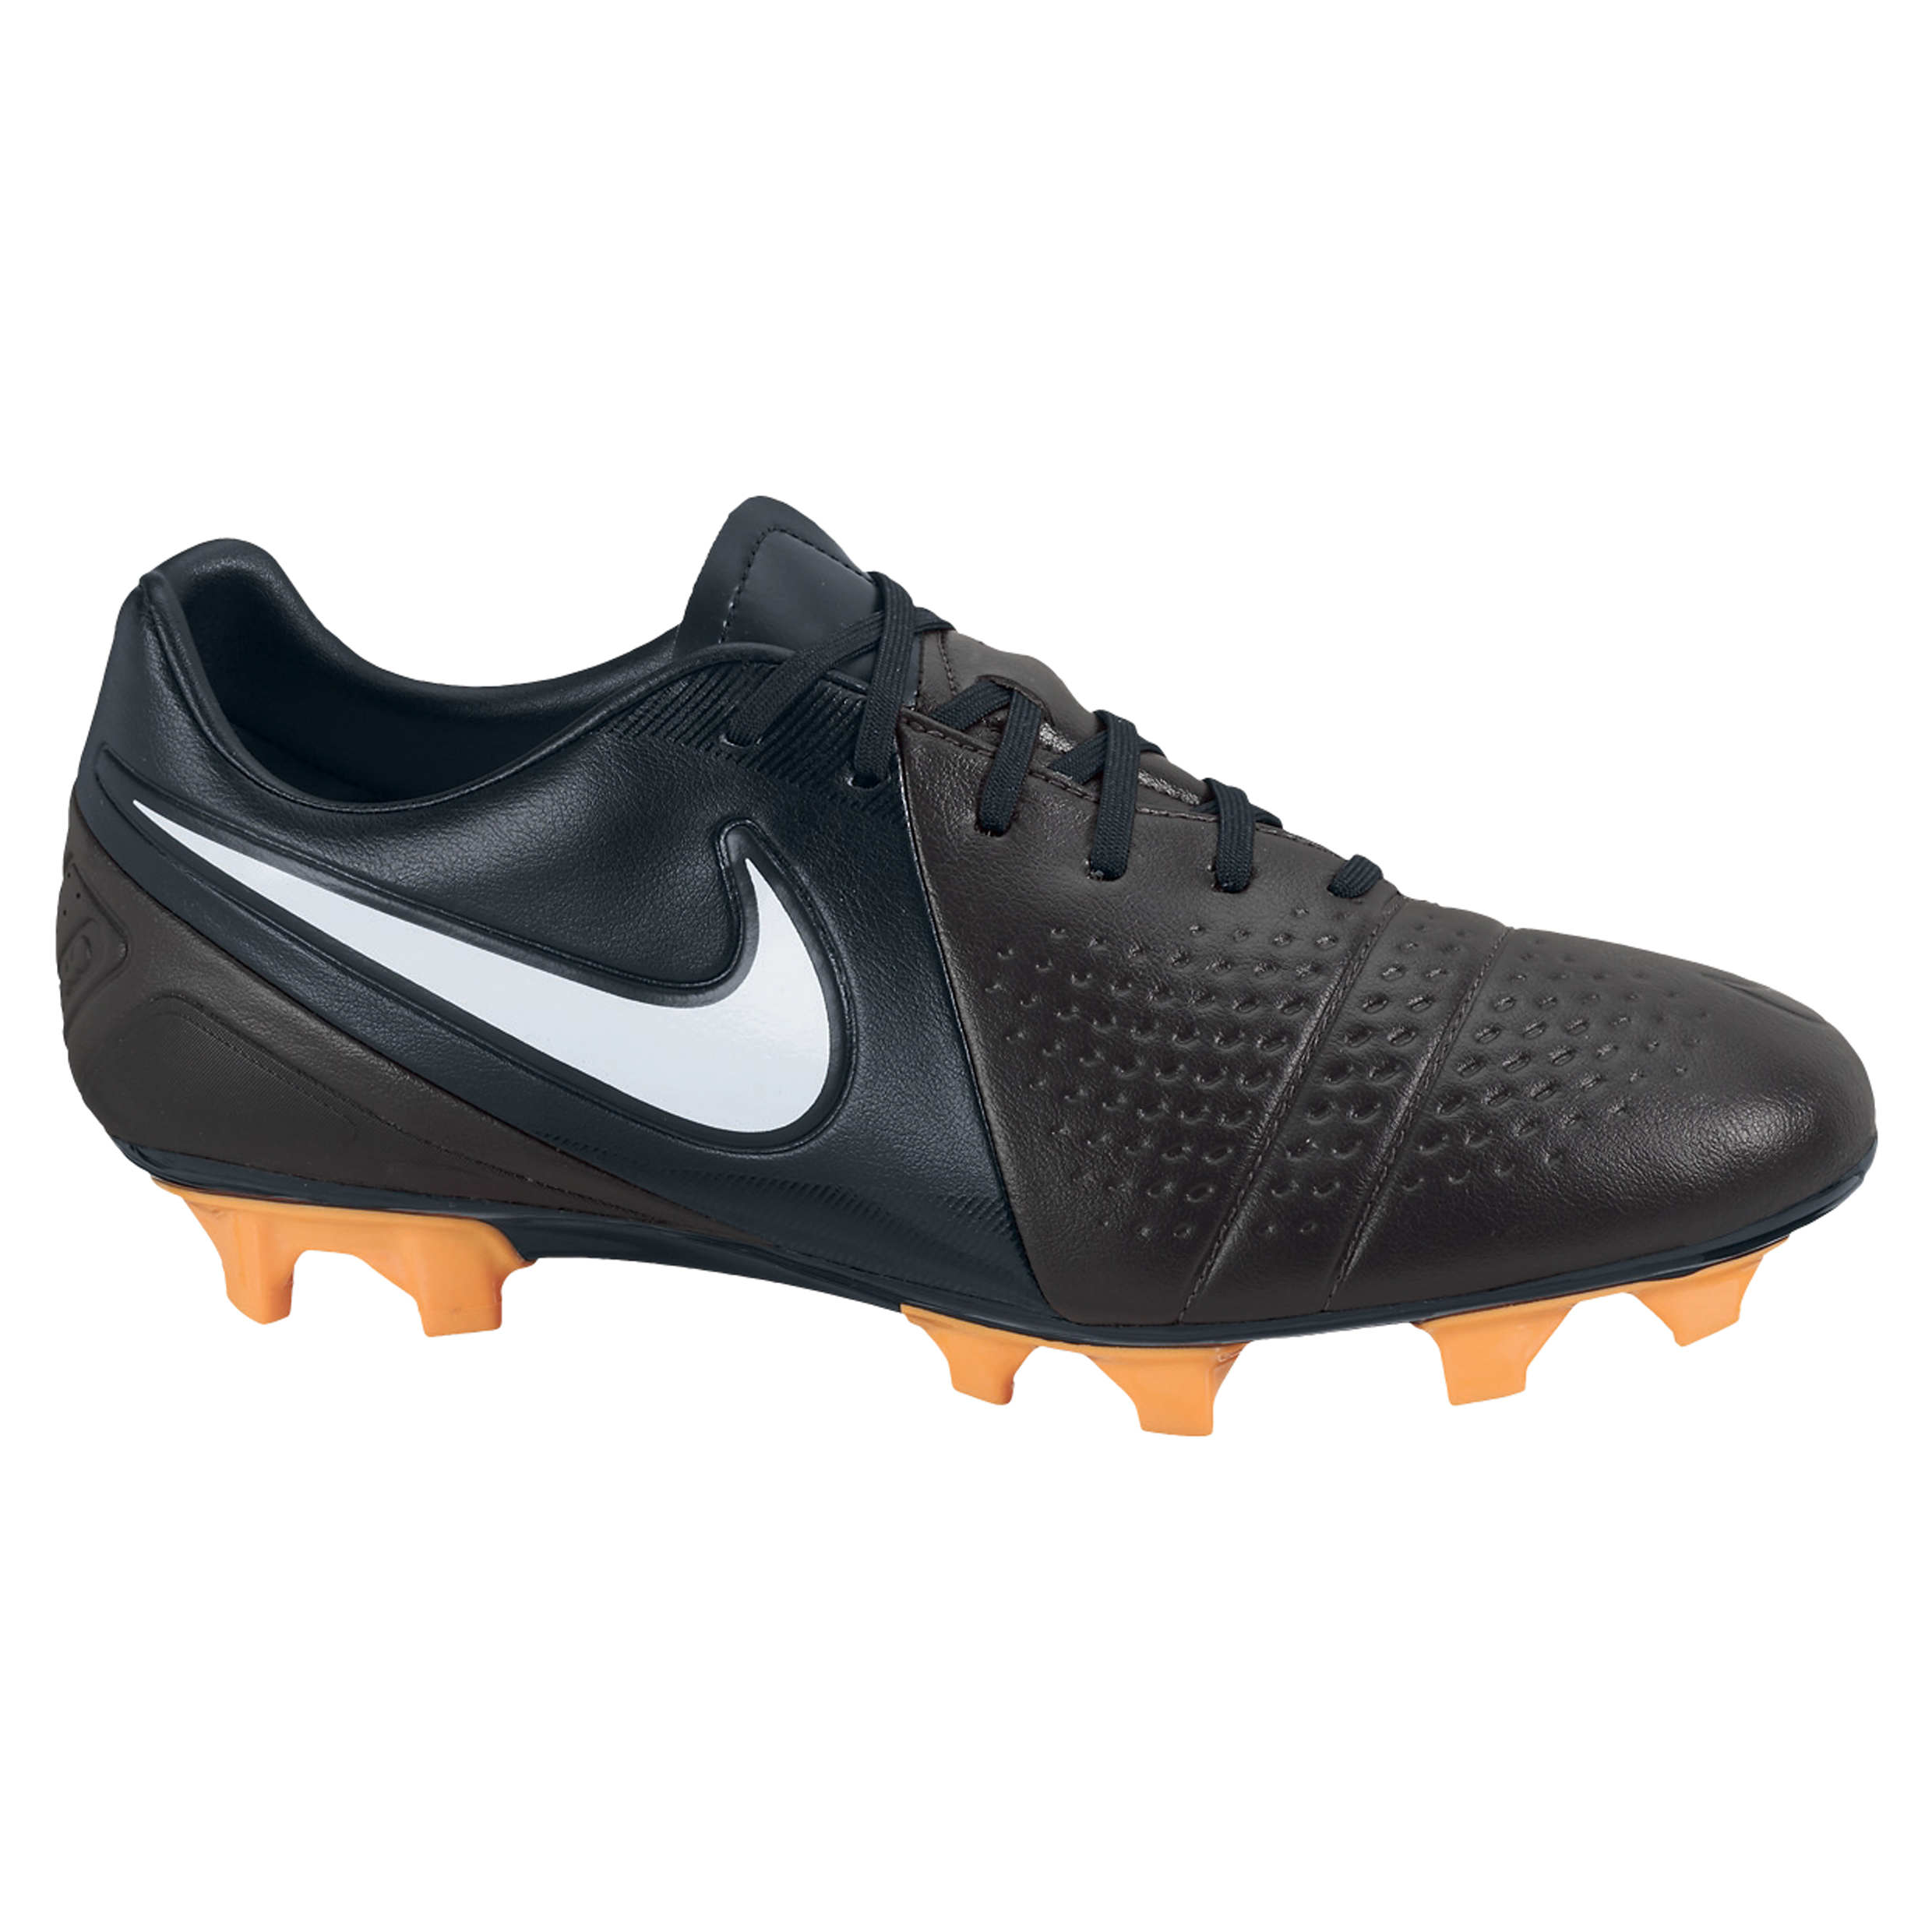 Nike CTR360 Trequartista III Firm Ground Football Boots Dk Grey